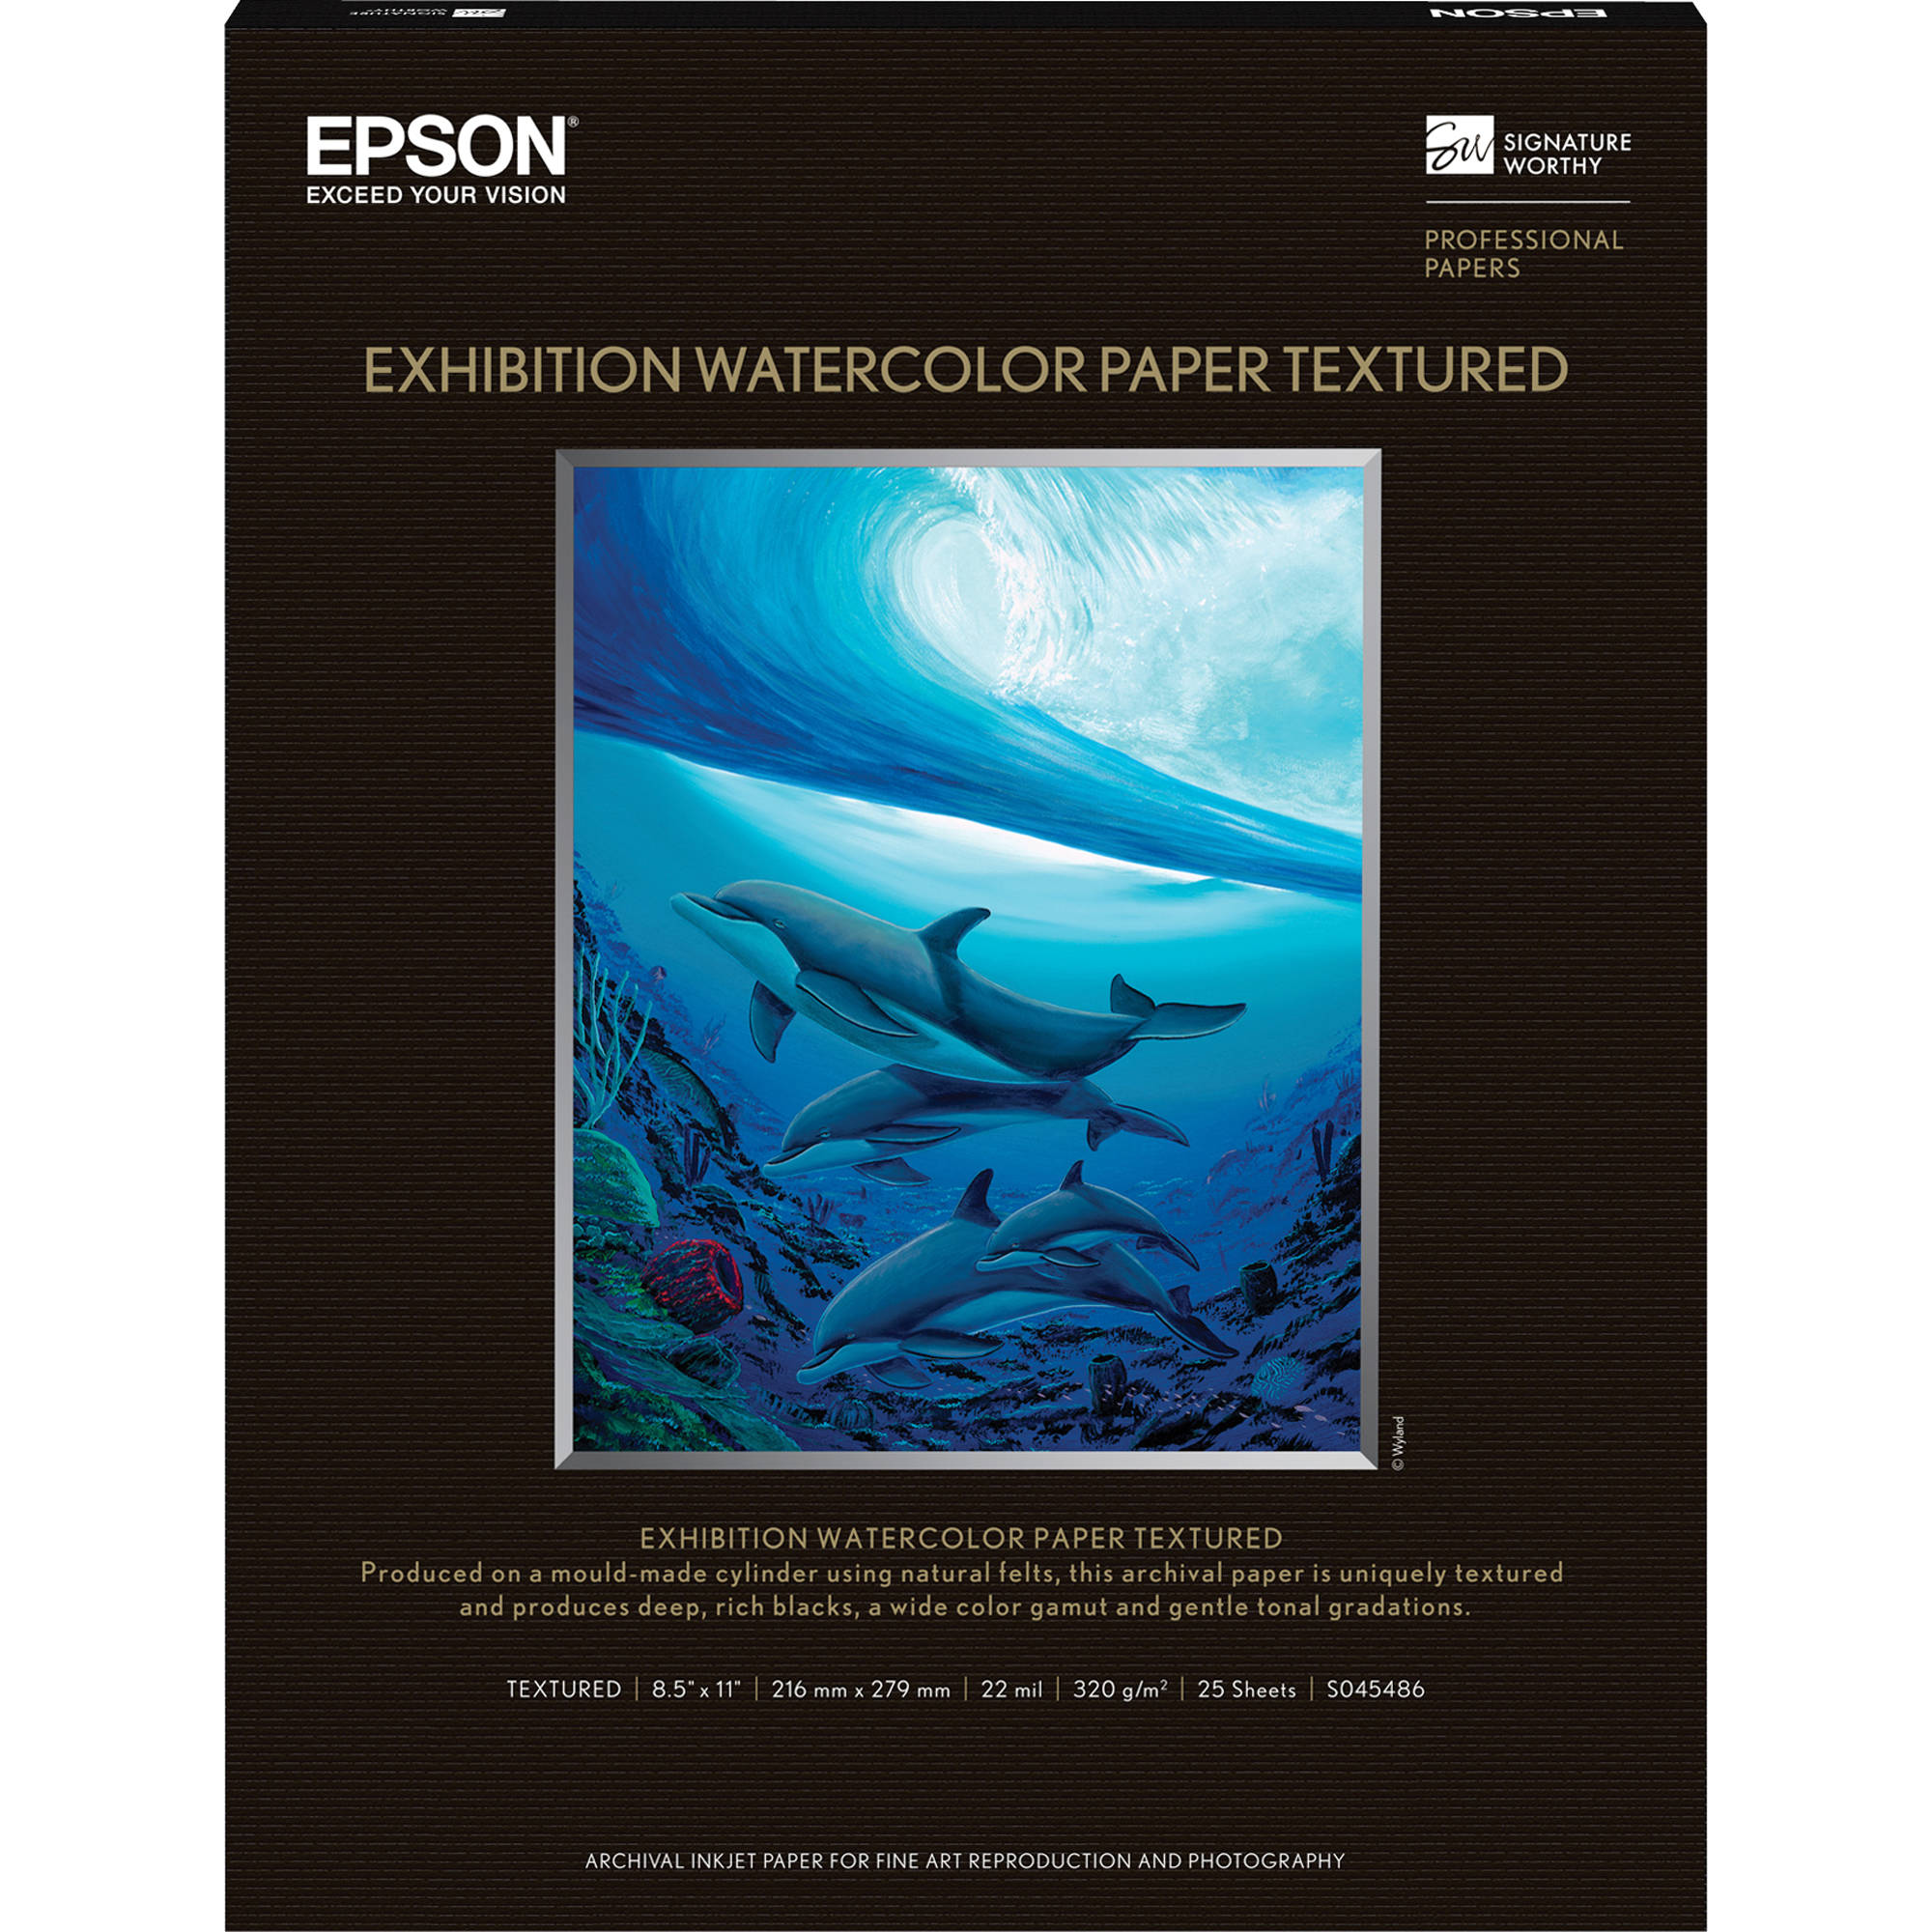 Epson Exhibition Watercolor Paper Textured S045486 B&H Photo